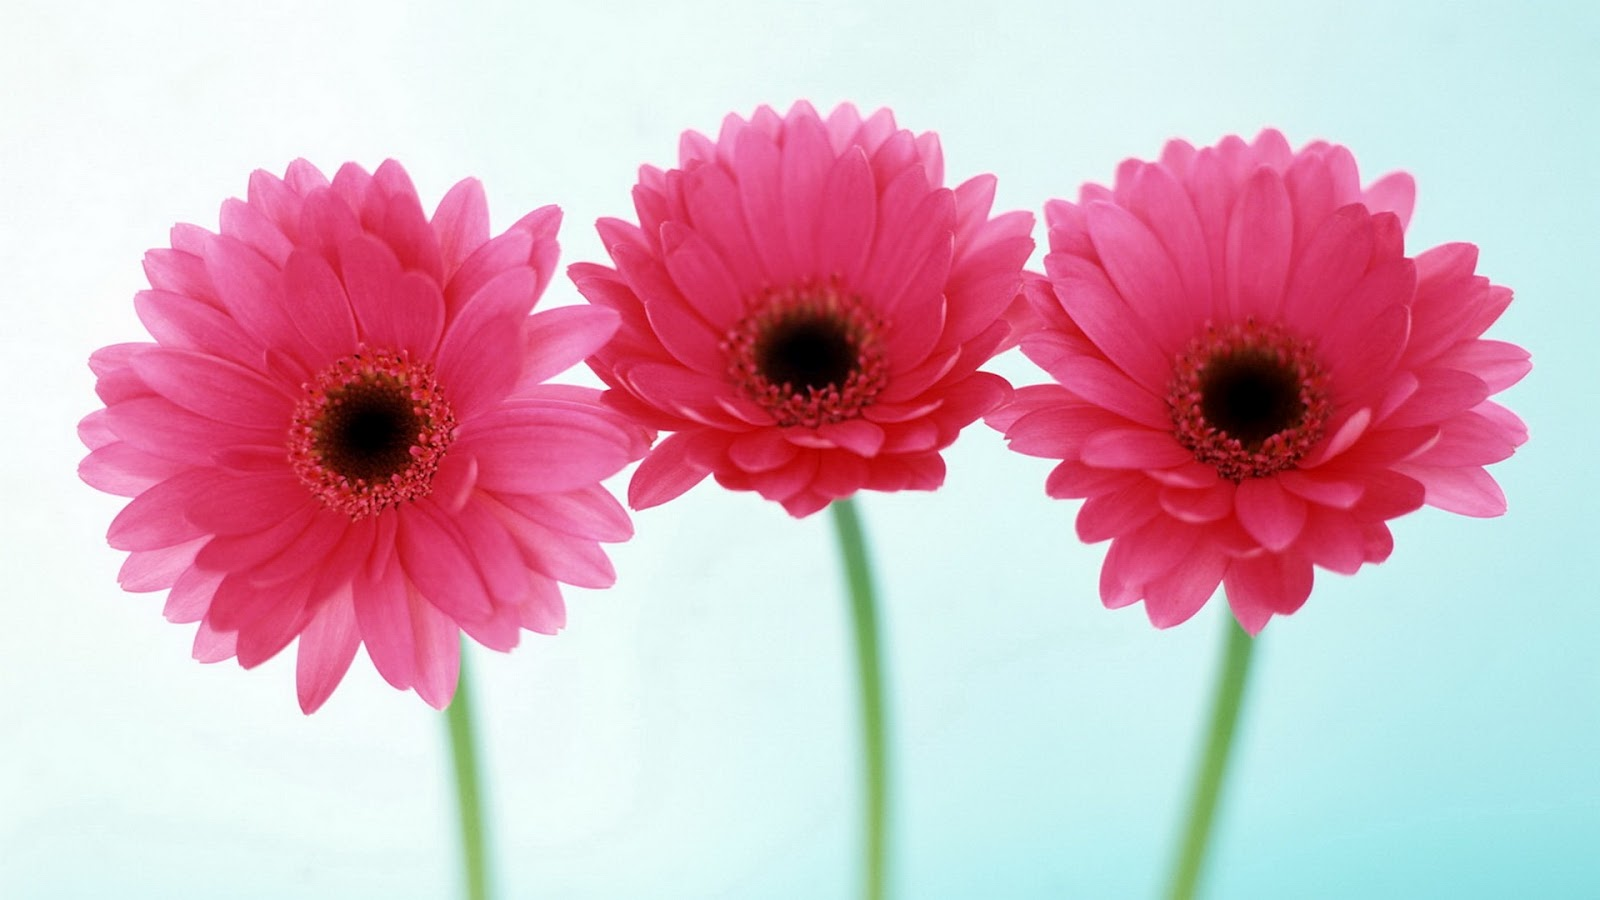 flowers for flower lovers HD flowers wallpapers 1600x900